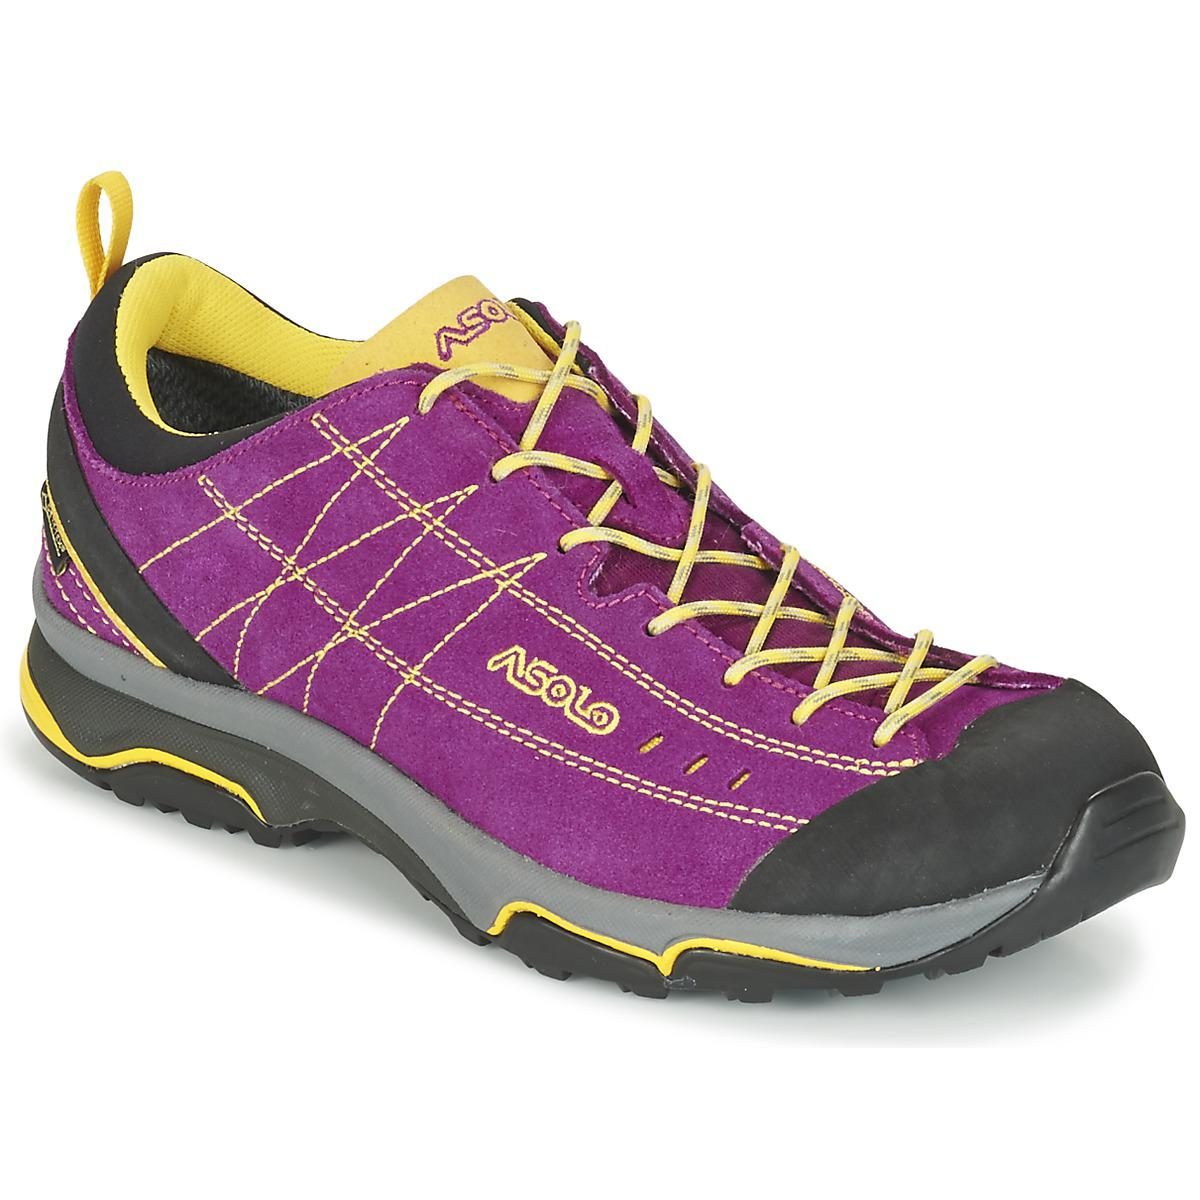 Asolo NUCLEON GV women's Walking Boots in Outlet Visit New Discount Finishline Cxn3kLg4w1